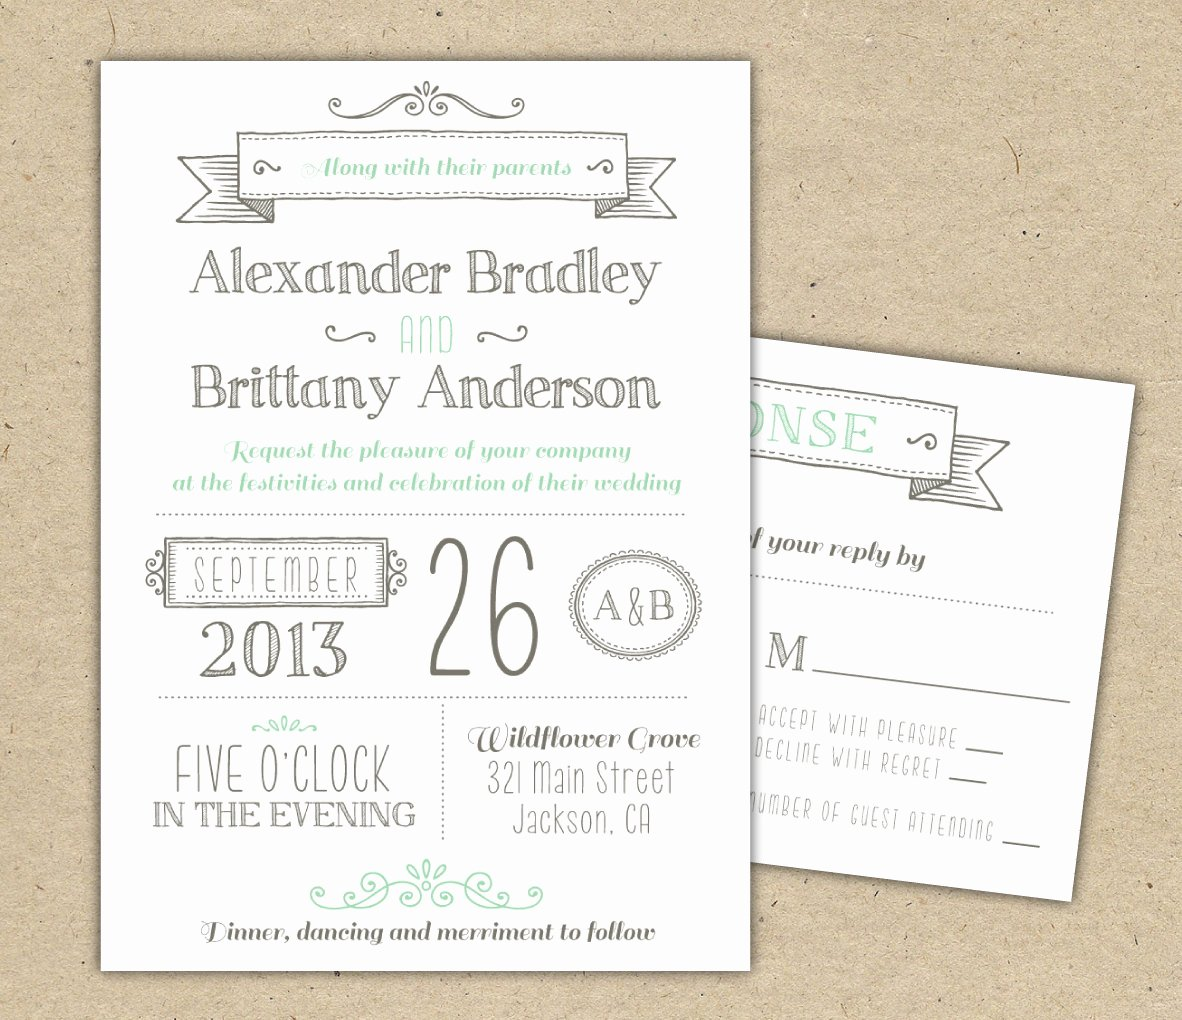 Printable Wedding Invitation Template Fresh Wedding Invitation 1041 Sample Modern Invitation Template